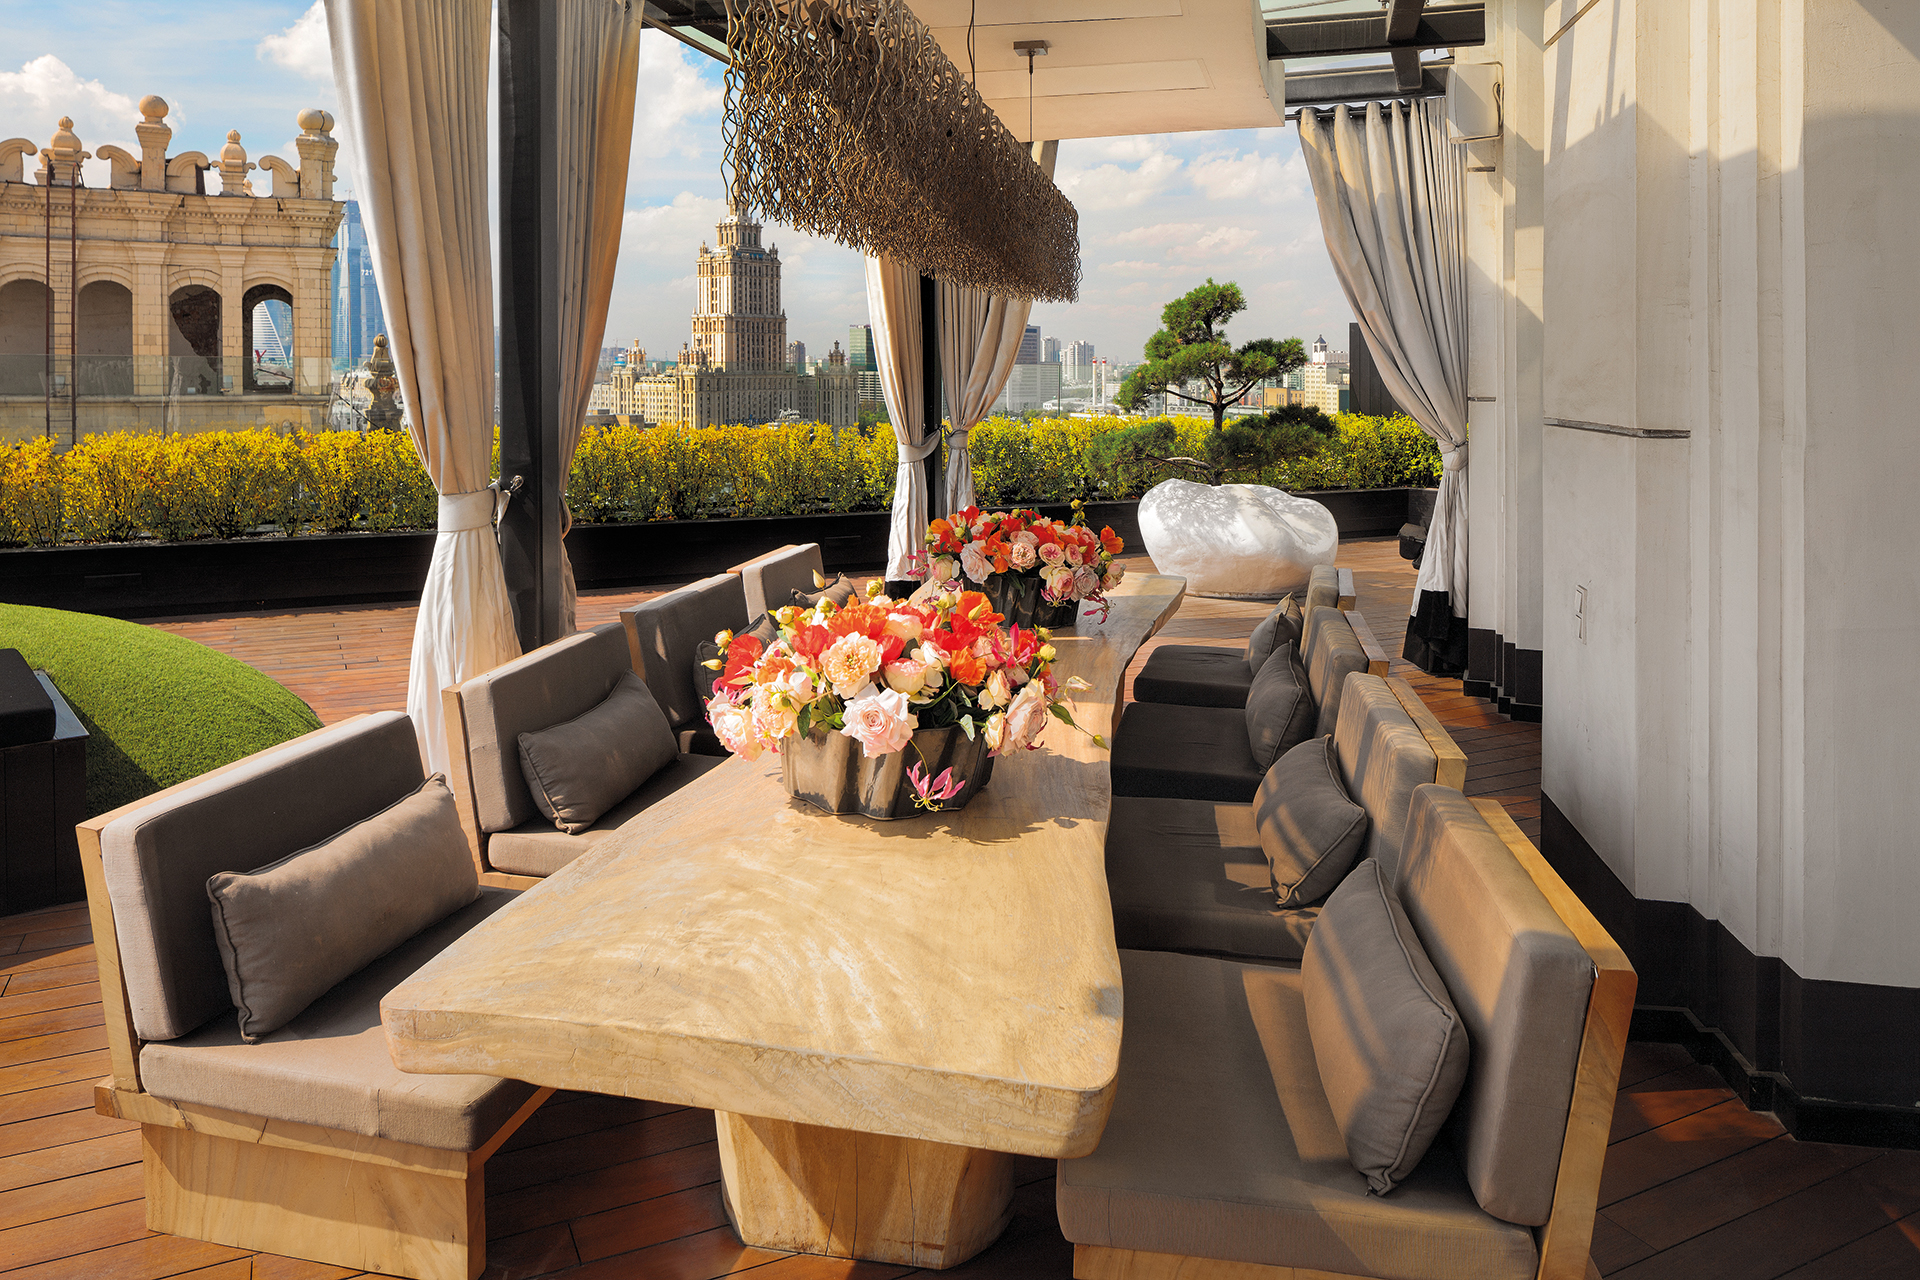 Rooftop garden outdoor dining table overlooking Moscow city centre